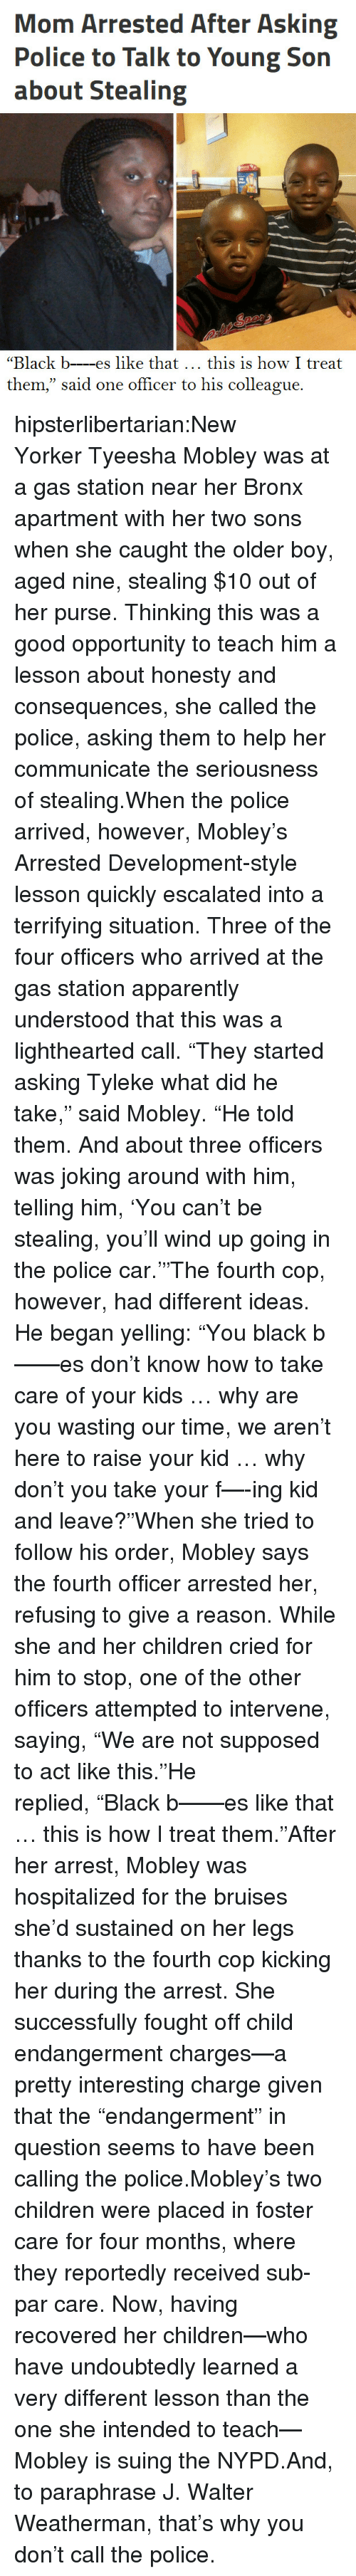 """arrested development: Mom Arrested After Asking  Police to Talk to Young Son  about Stealing  """"Black b---es like that this is how I treat  them,"""" said one officer to his colleague. hipsterlibertarian:New YorkerTyeesha Mobley was at a gas station near her Bronx apartment with her two sons when she caught the older boy, aged nine, stealing $10 out of her purse. Thinking this was a good opportunity to teach him a lesson about honesty and consequences, she called the police, asking them to help her communicate the seriousness of stealing.When the police arrived, however, Mobley's Arrested Development-style lesson quickly escalated into a terrifying situation. Three of the four officers who arrived at the gas station apparently understood that this was a lighthearted call.""""They started asking Tyleke what did he take,"""" said Mobley. """"He told them. And about three officers was joking around with him, telling him, 'You can't be stealing, you'll wind up going in the police car.'""""The fourth cop, however, had different ideas. He began yelling:""""You black b——es don't know how to take care of your kids … why are you wasting our time, we aren't here to raise your kid … why don't you take your f—-ing kid and leave?""""When she tried to follow his order, Mobley says the fourth officer arrested her, refusing to give a reason. While she and her children cried for him to stop, one of the other officers attempted to intervene, saying,""""We are not supposed to act like this.""""He replied,""""Black b——es like that … this is how I treat them.""""After her arrest, Mobley was hospitalized for the bruises she'd sustained on her legs thanks to the fourth cop kicking her during the arrest. She successfully fought off child endangerment charges—a pretty interesting charge given that the""""endangerment"""" in question seems to have been calling the police.Mobley's two children were placed in foster care for four months, where they reportedly received sub-par care. Now, having recovered her children—who have undoubt"""